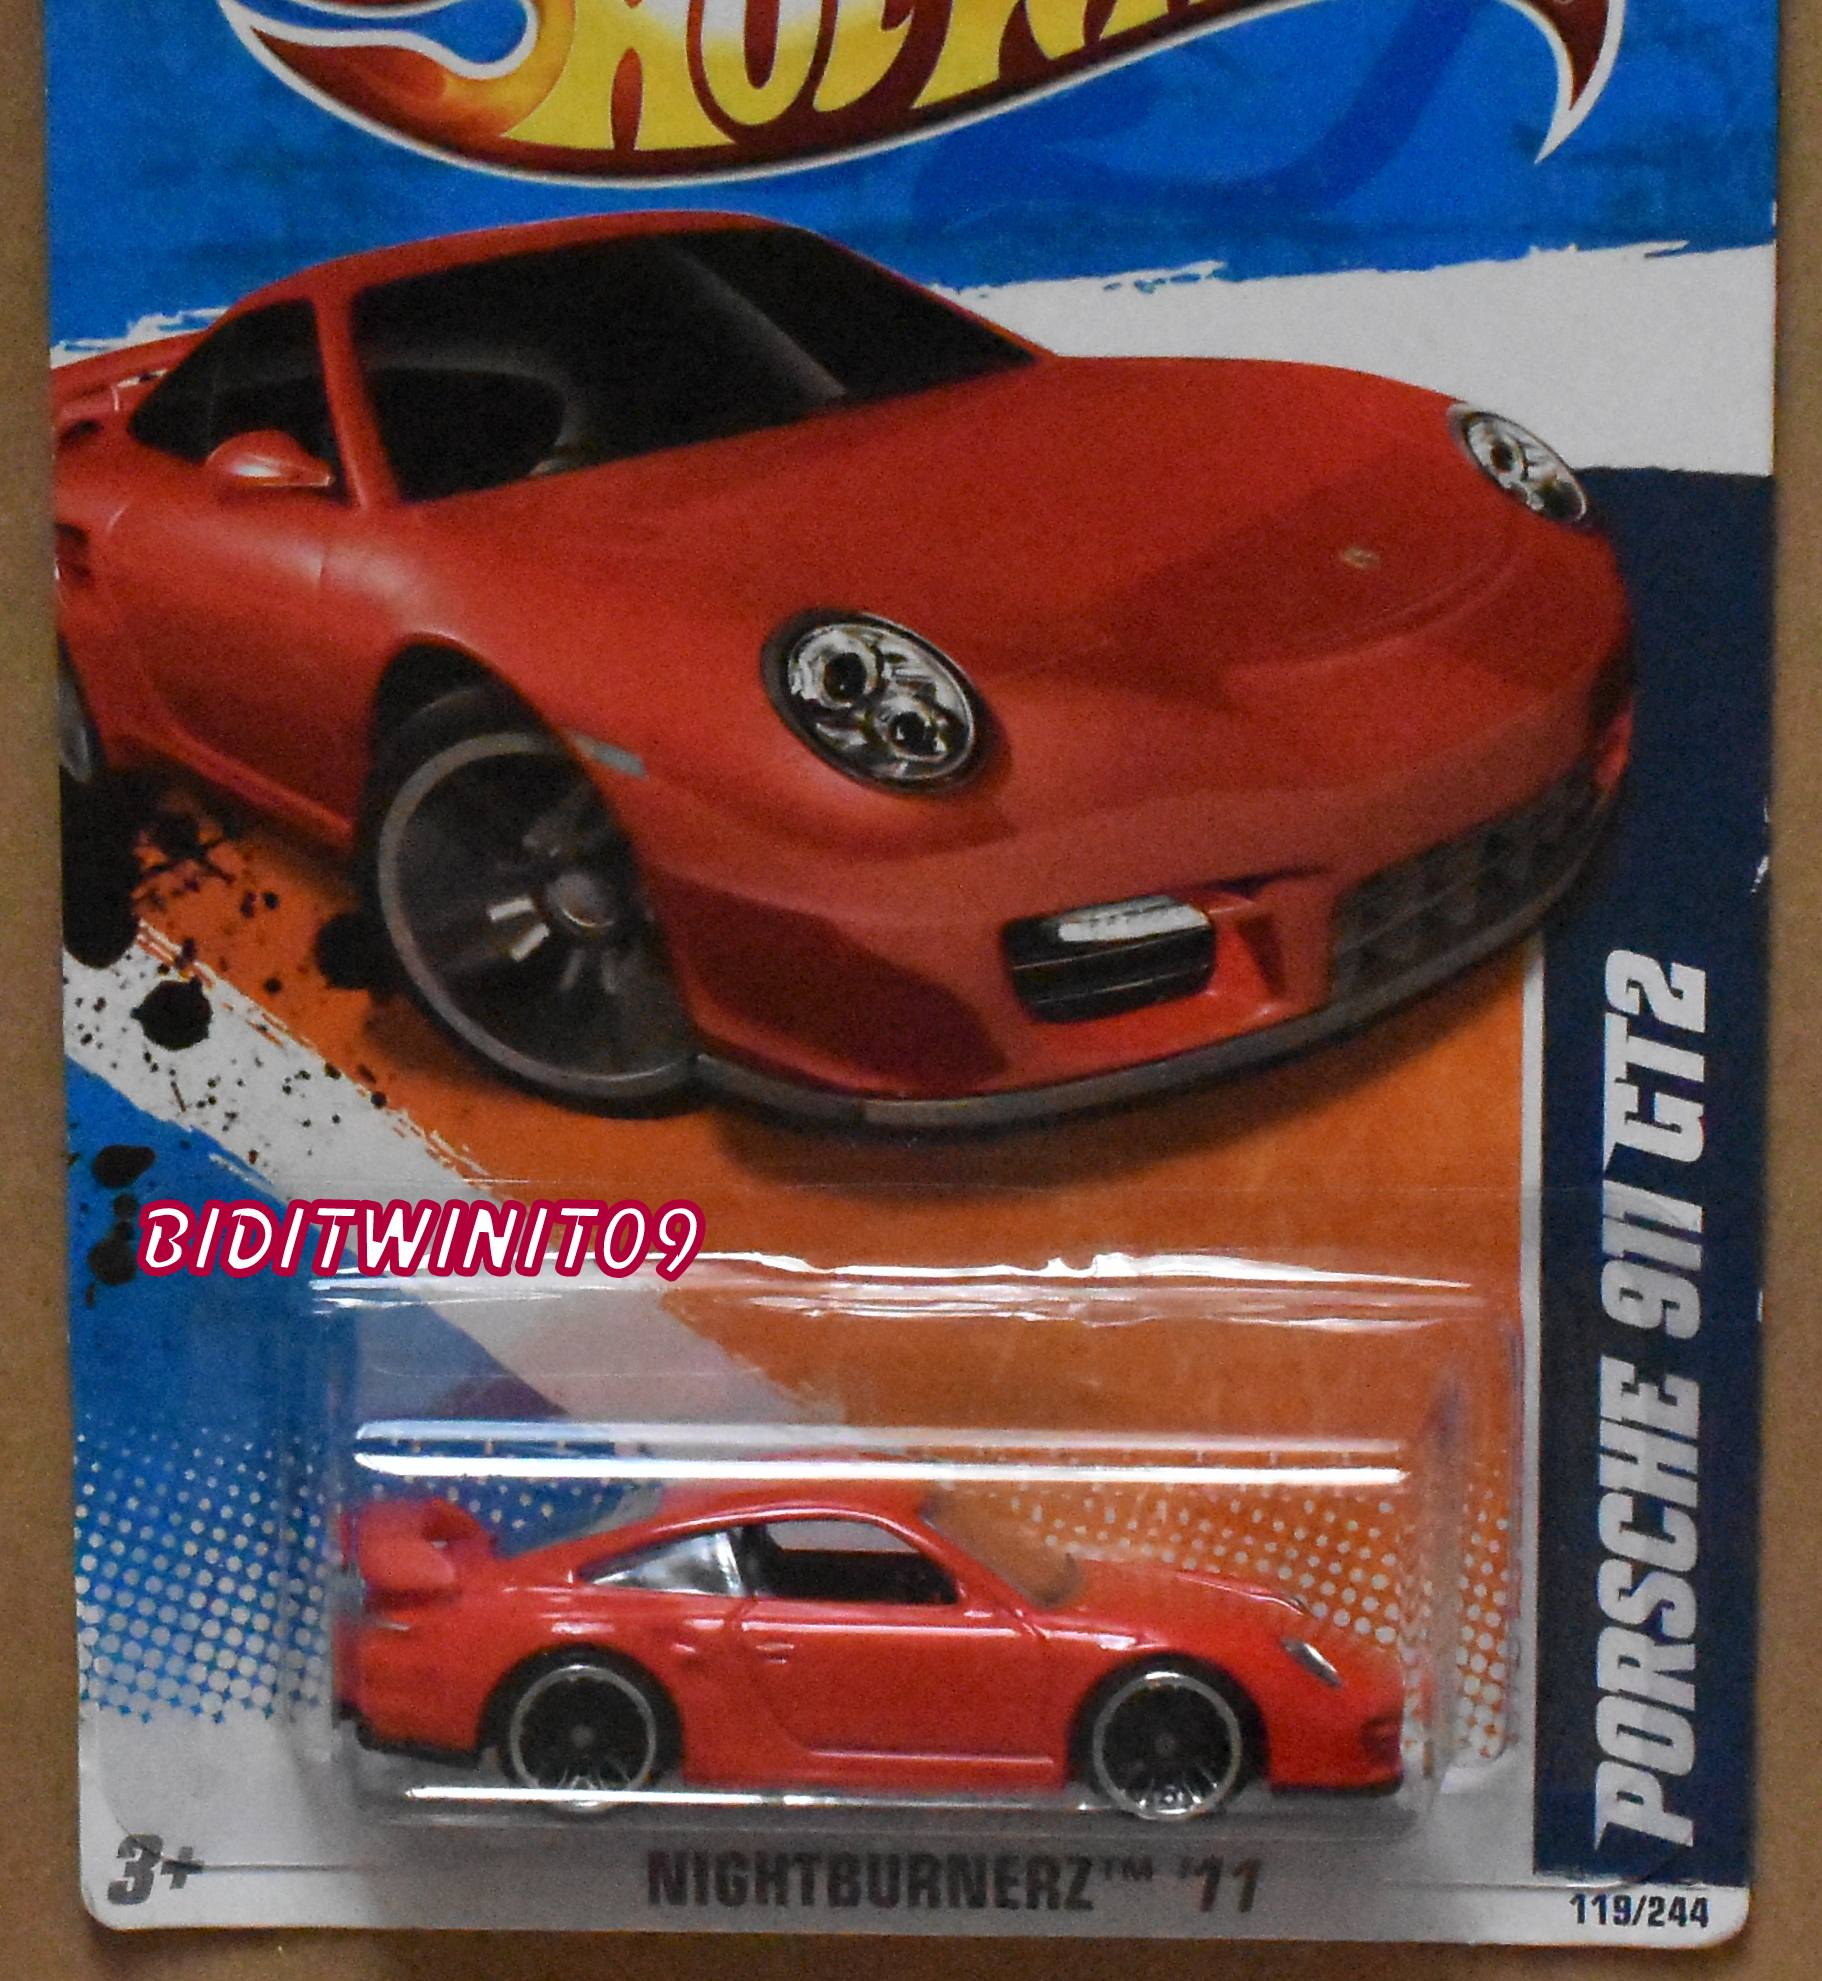 HOT WHEELS 2011 NIGHTBURNERZ PORSCHE 911 GT2 RED E+